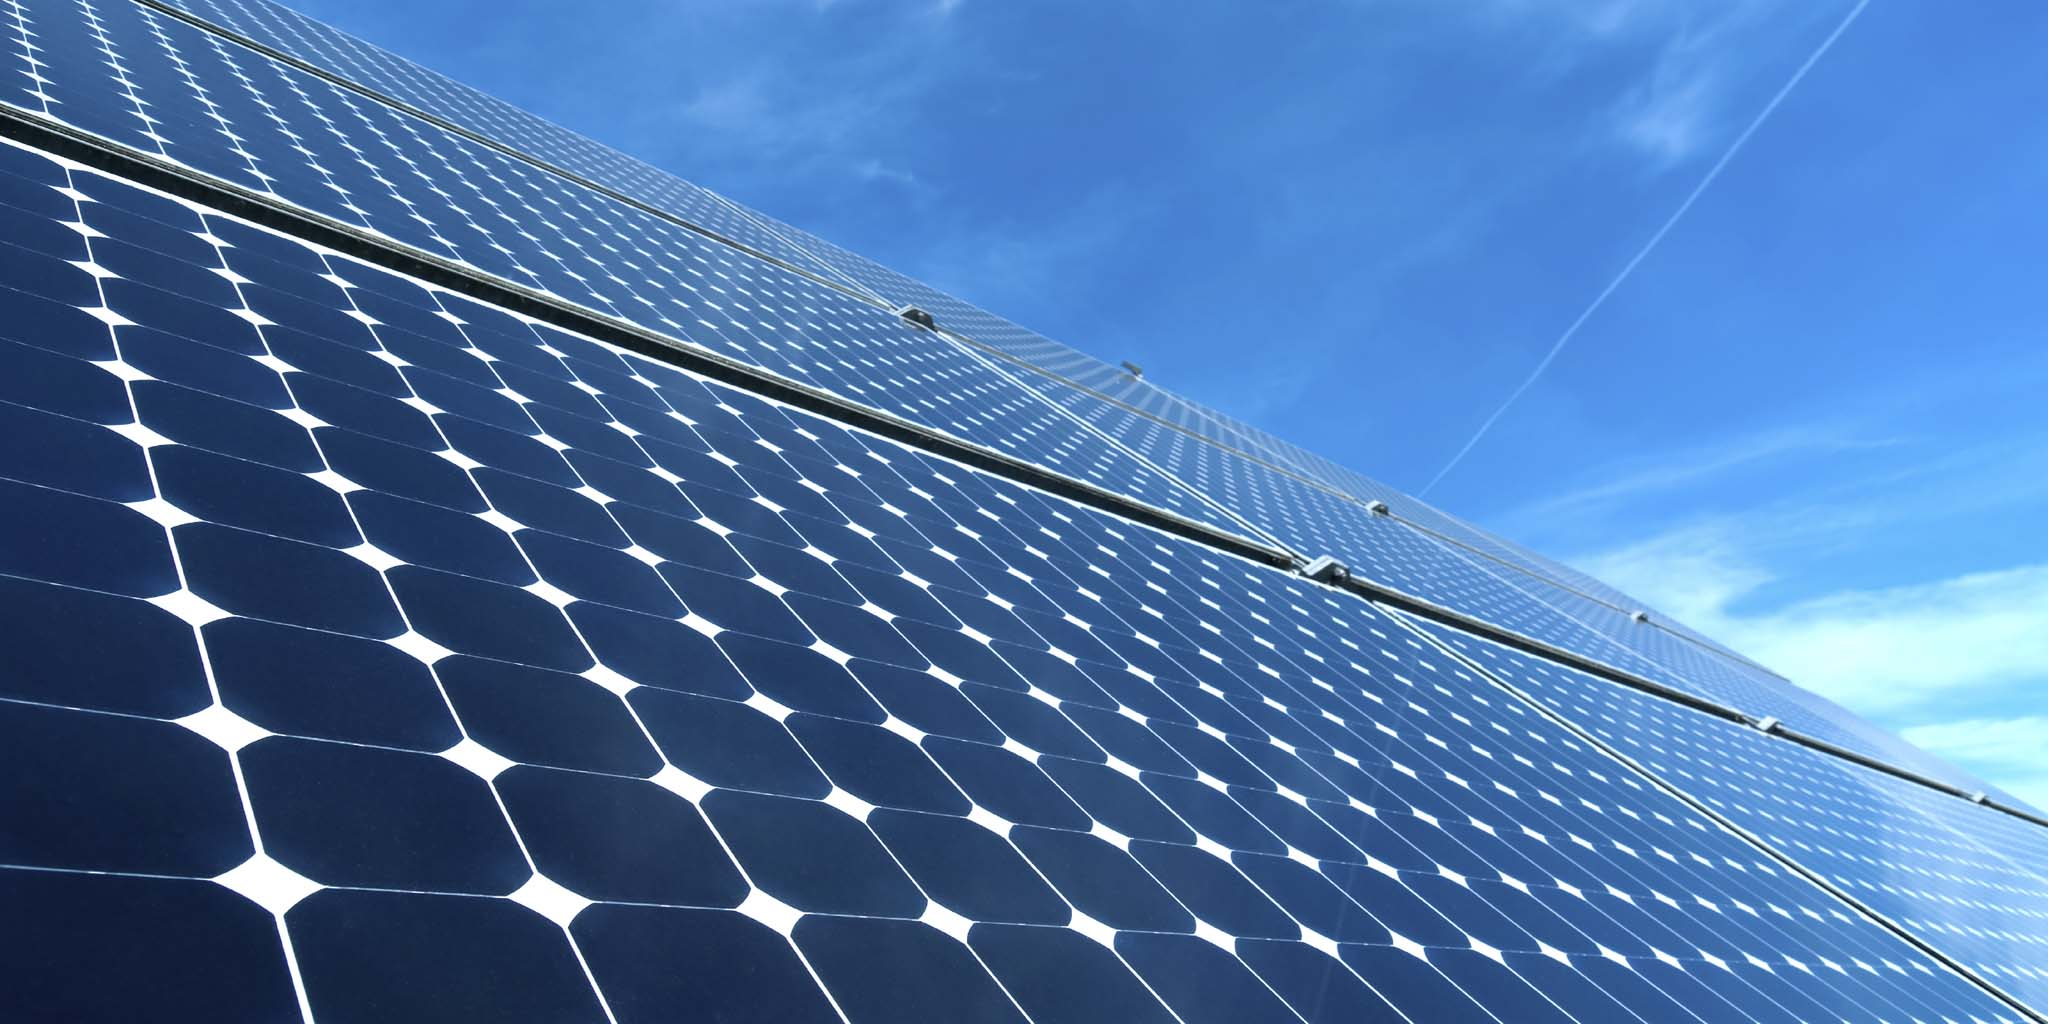 With solar panel ownership on the increase, legislation is needed to protect owners rights.